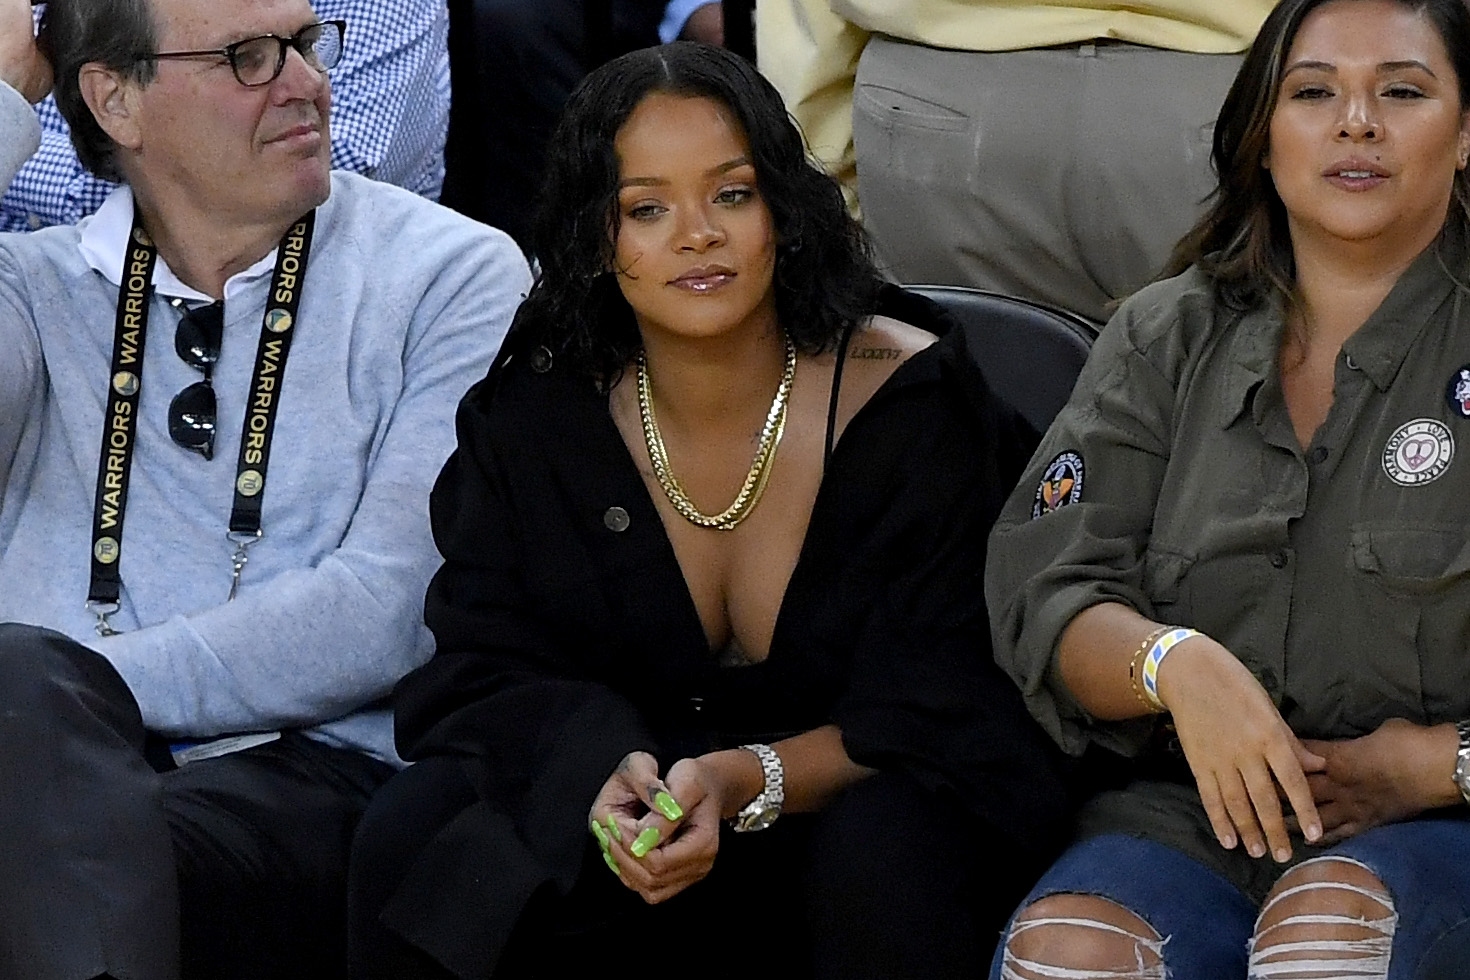 Rihanna helped a fan with his heartbreak and what she says is amazing